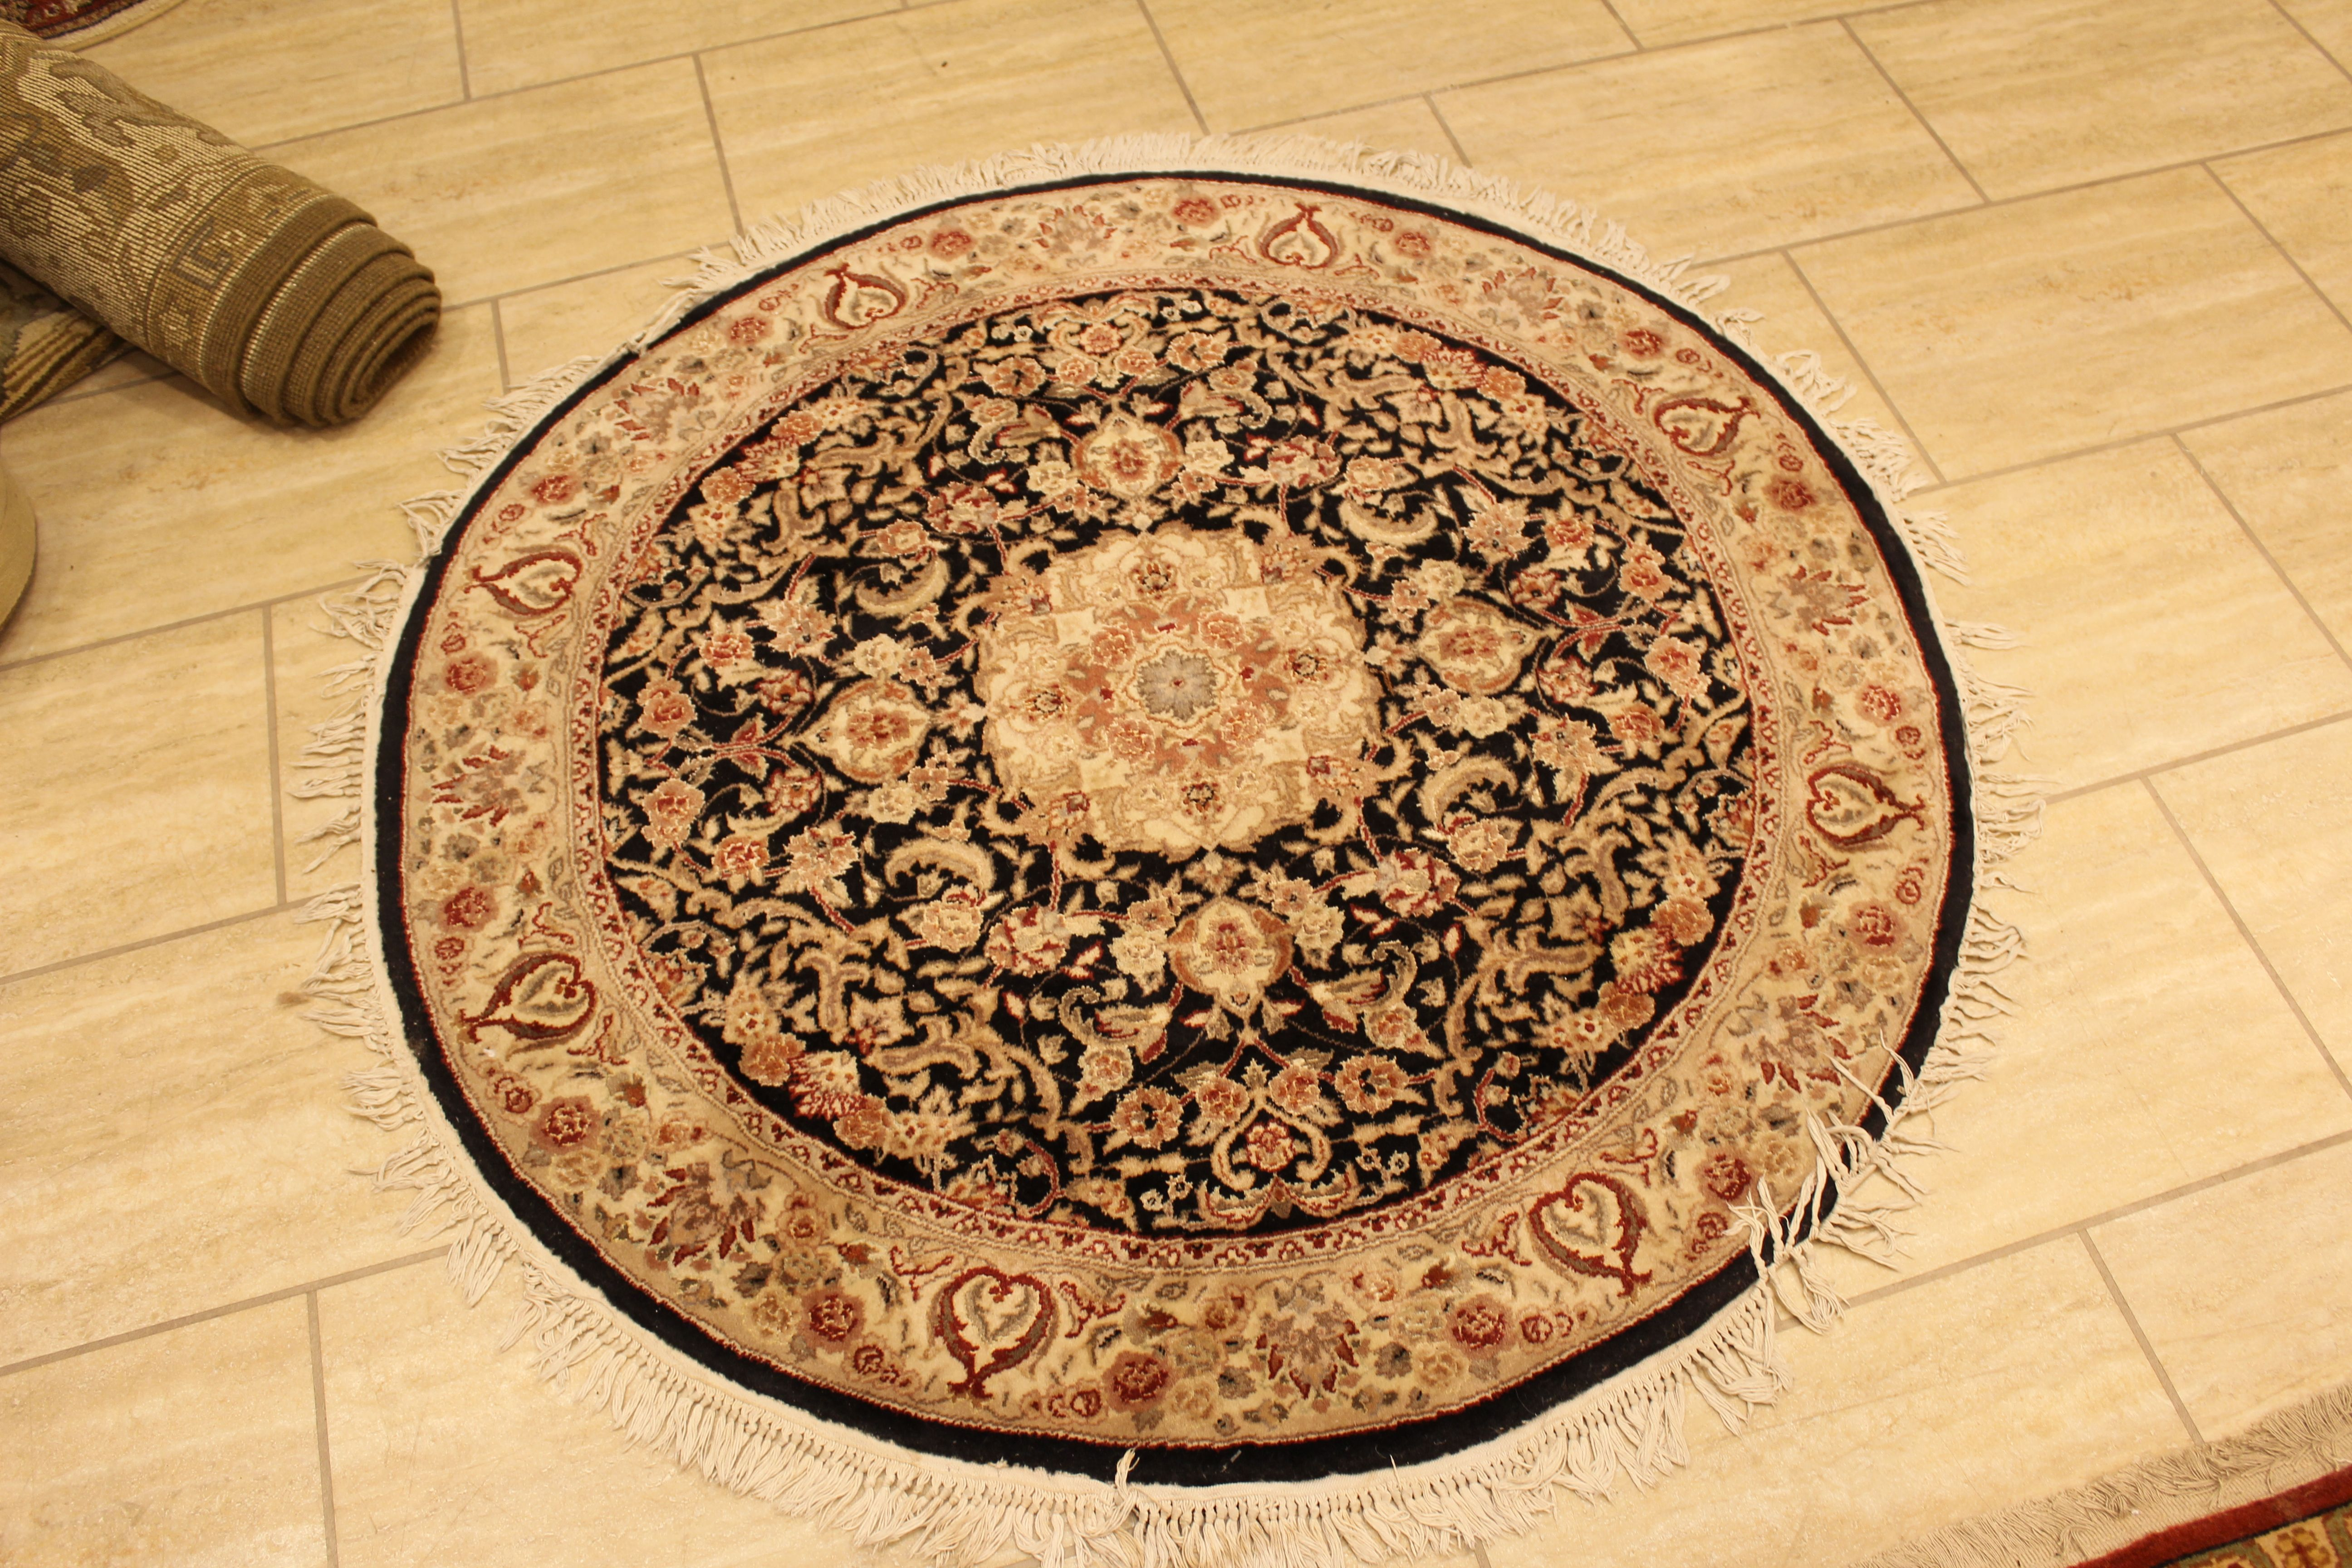 Small Round Rug Perfect For A Small Sitting Area Or The Focal Point Of Room Garuggallery Round Handmade Traditional Small Round Rugs Round Rugs Cool Rugs Small round area rug